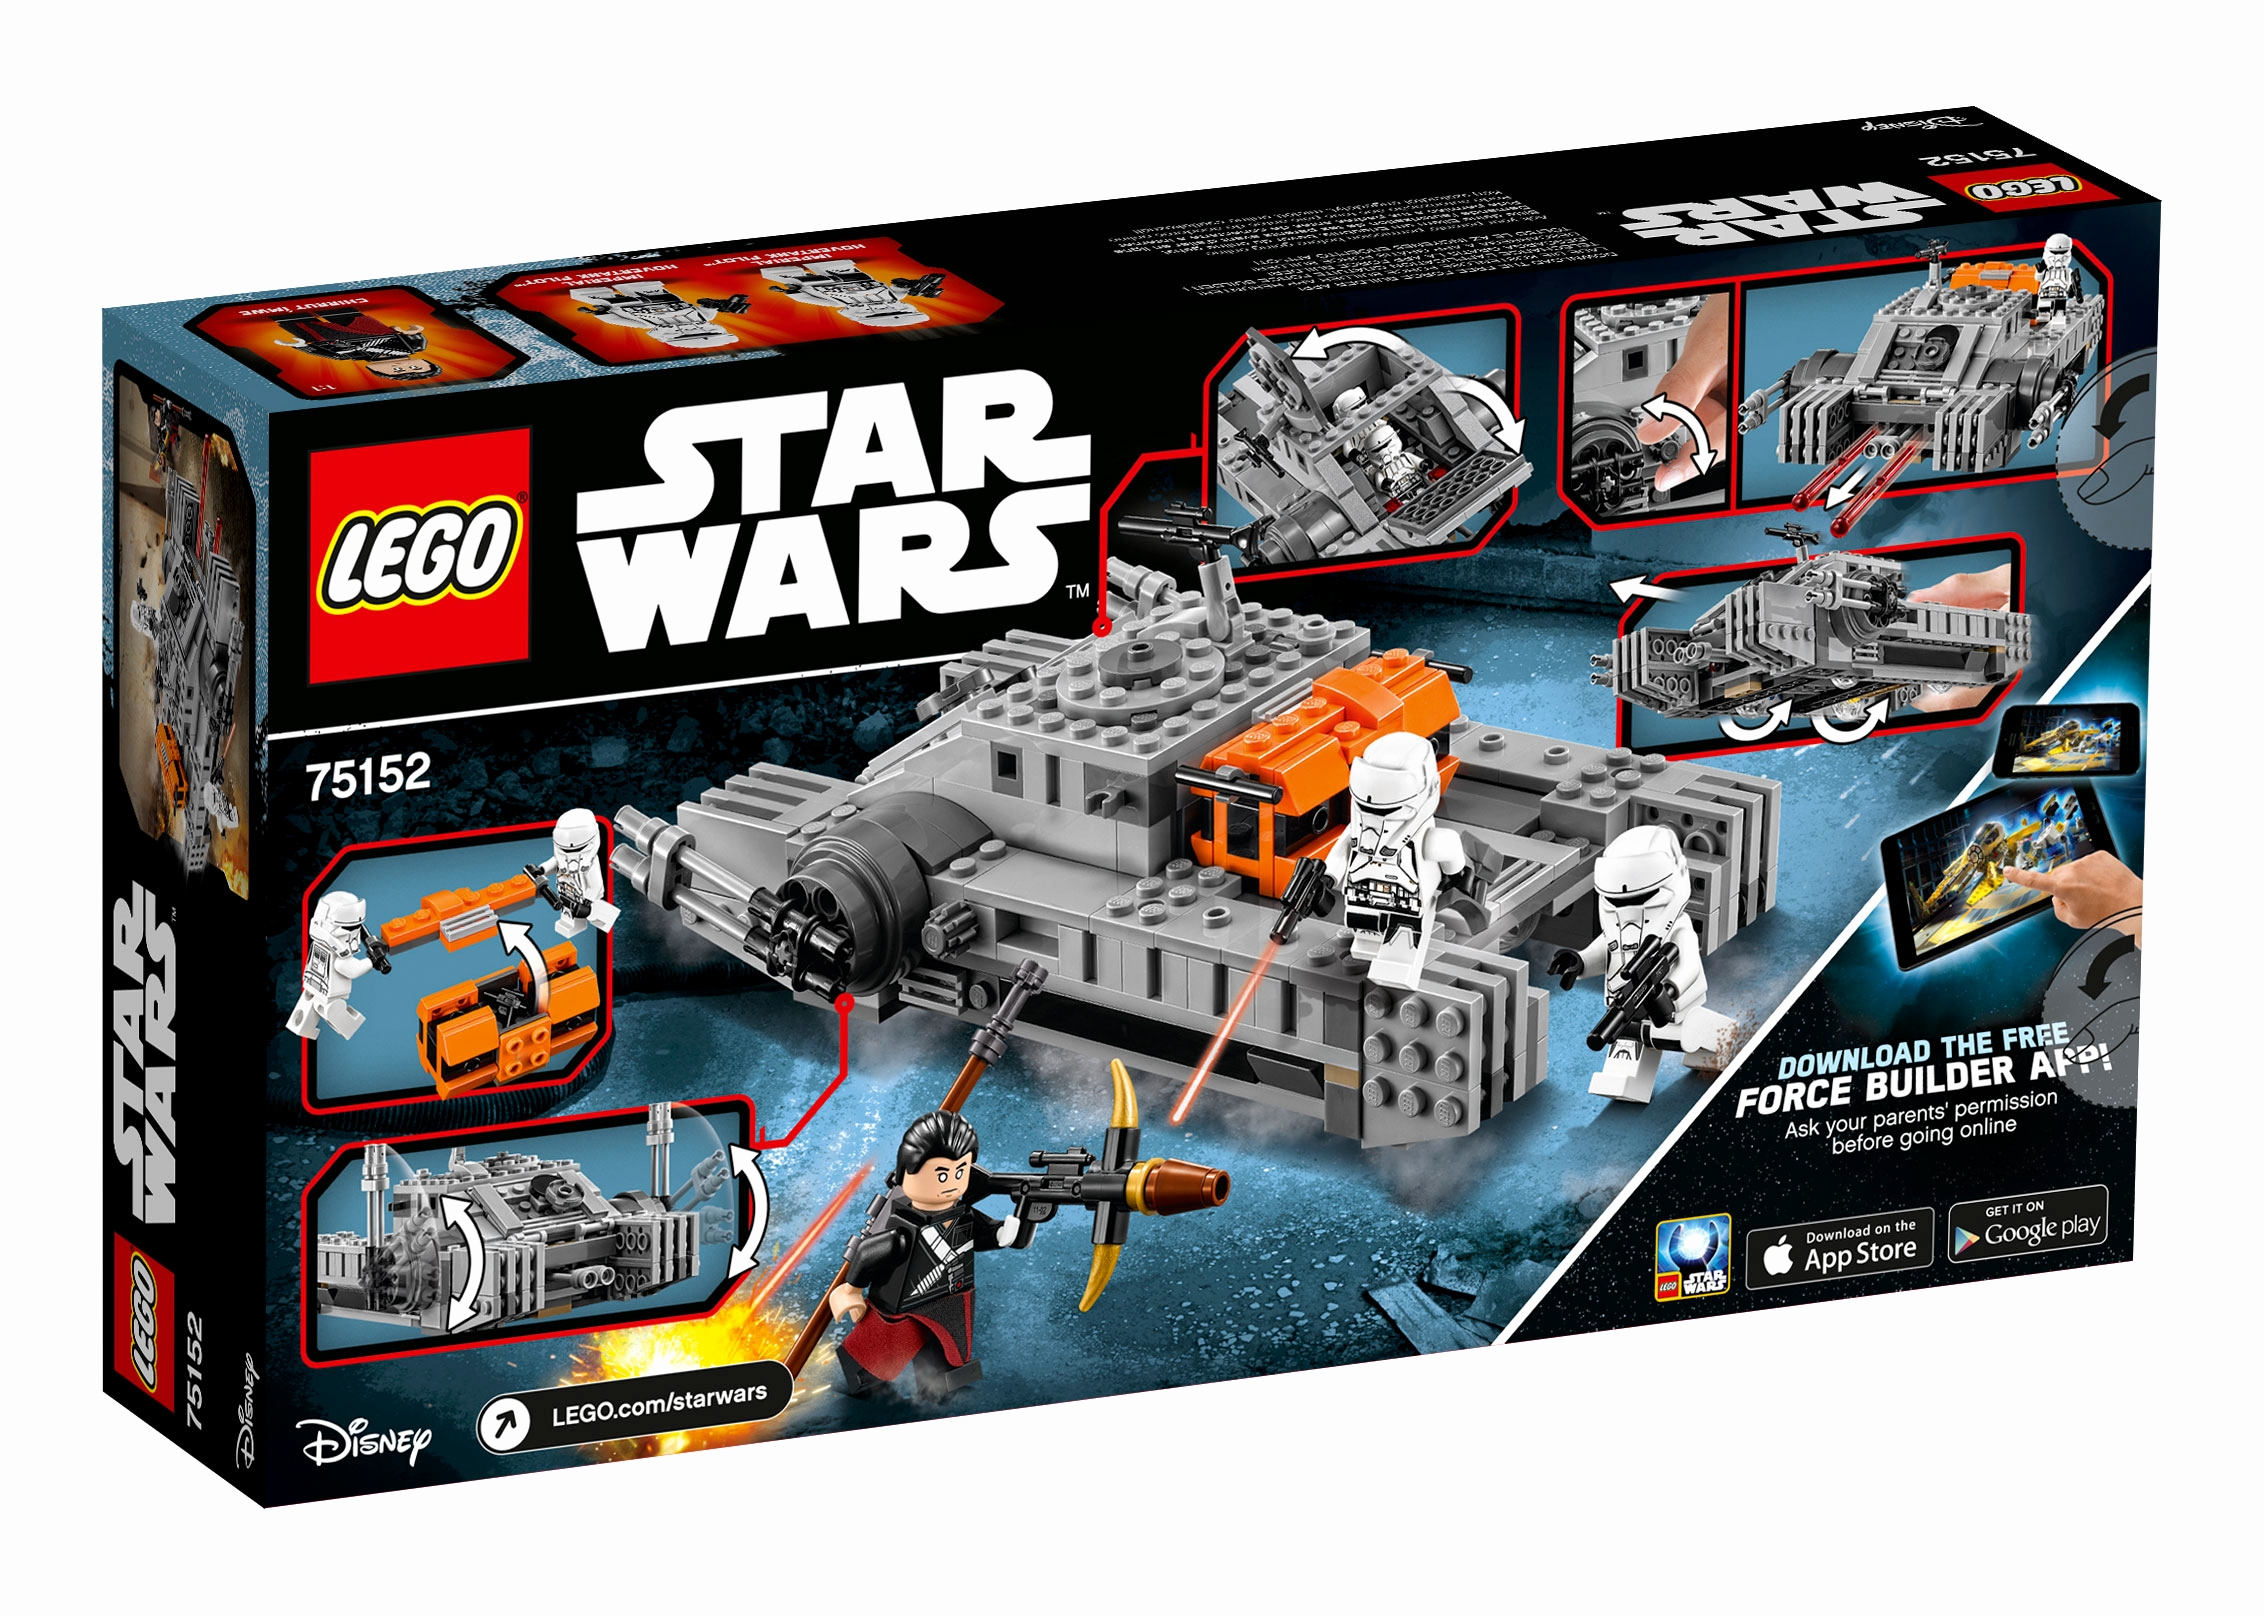 Star Wars Online Game Kostenlos Schön Lego Star Wars™ Rogue E Imperial assault Hovertank™ Animegami Store